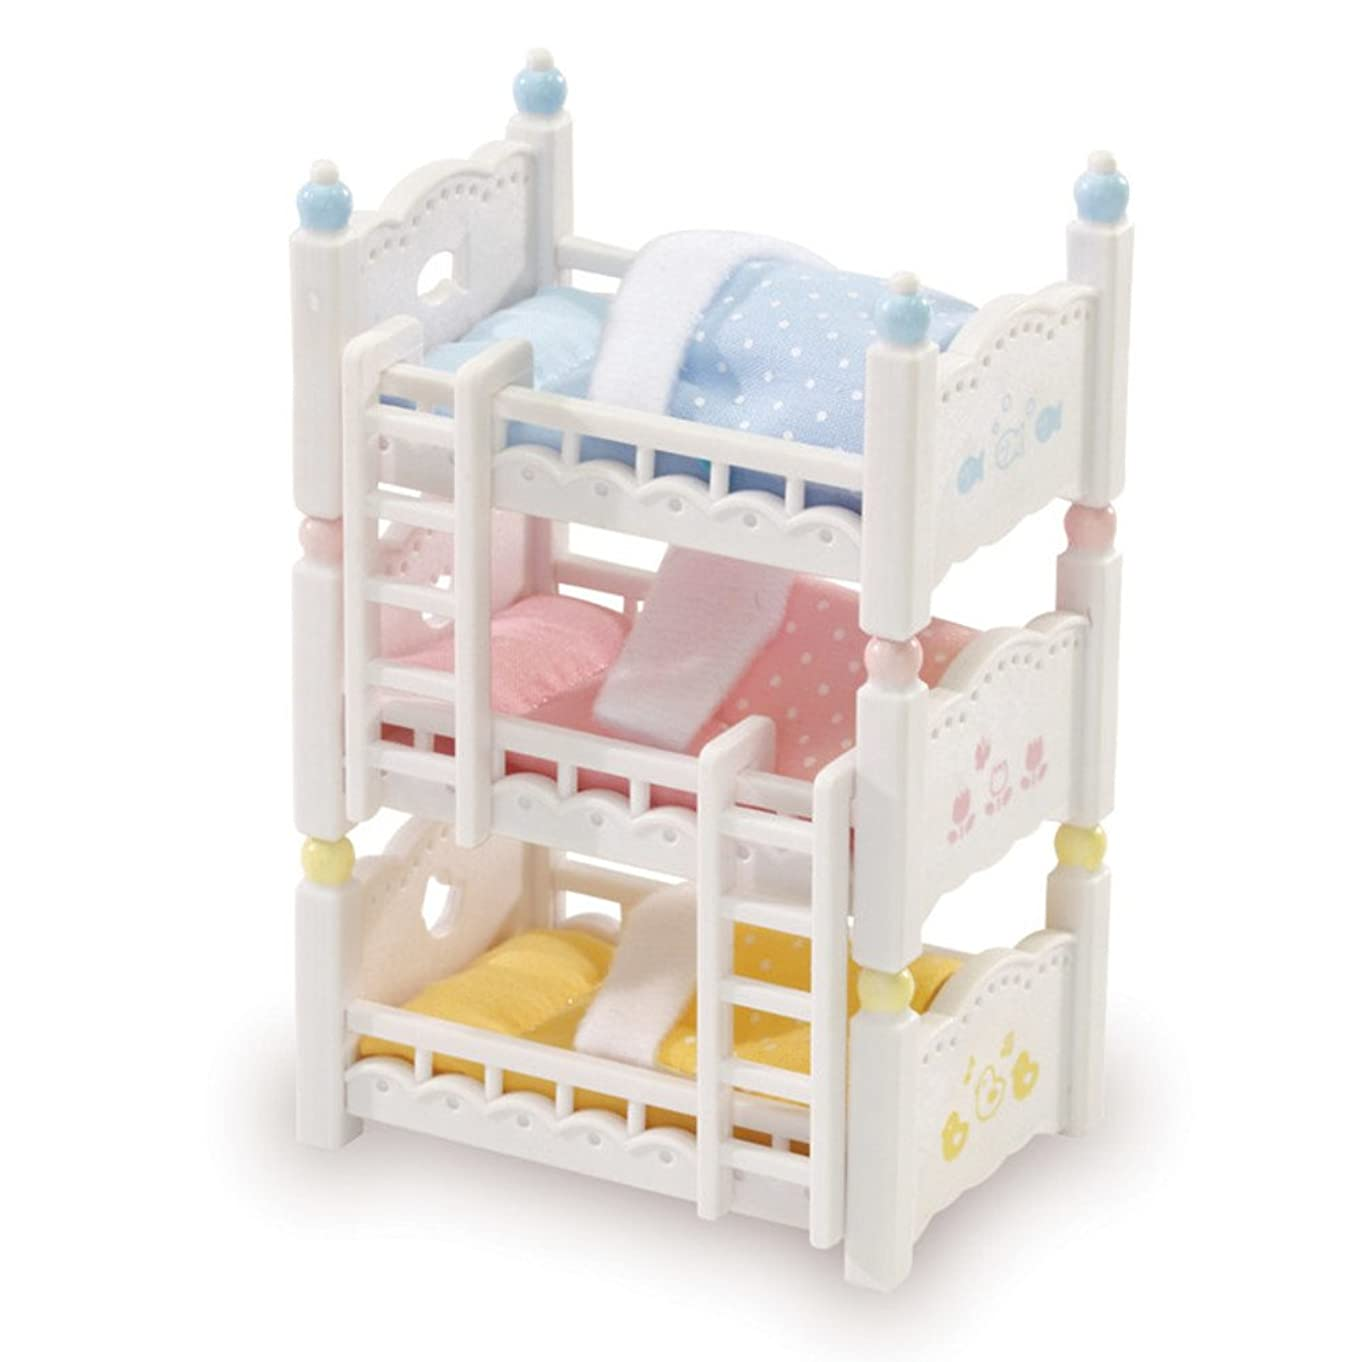 Calico Critters Triple Baby Bunk Beds i75131439